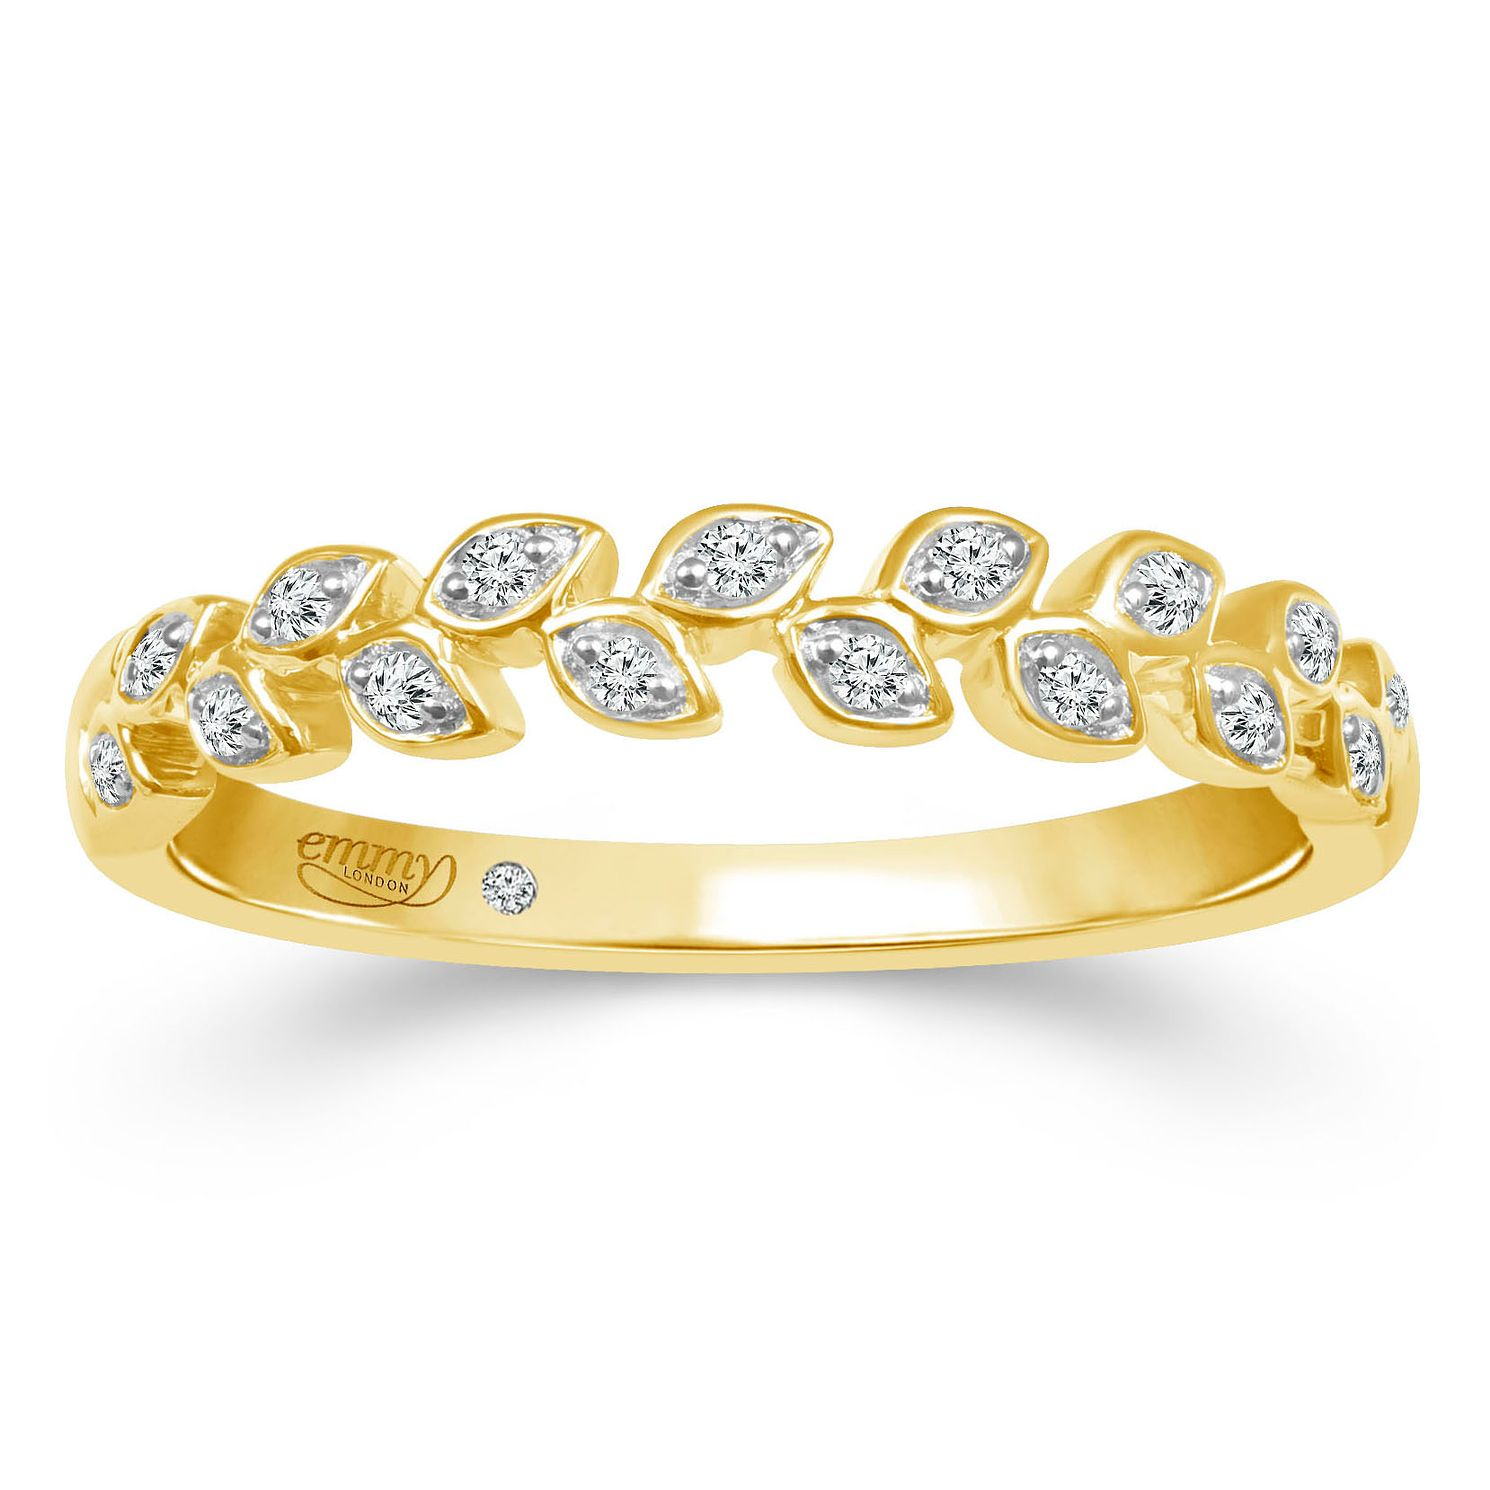 Emmy London 18ct Yellow Gold Diamond Leaf Eternity Ring - Product number 2884550